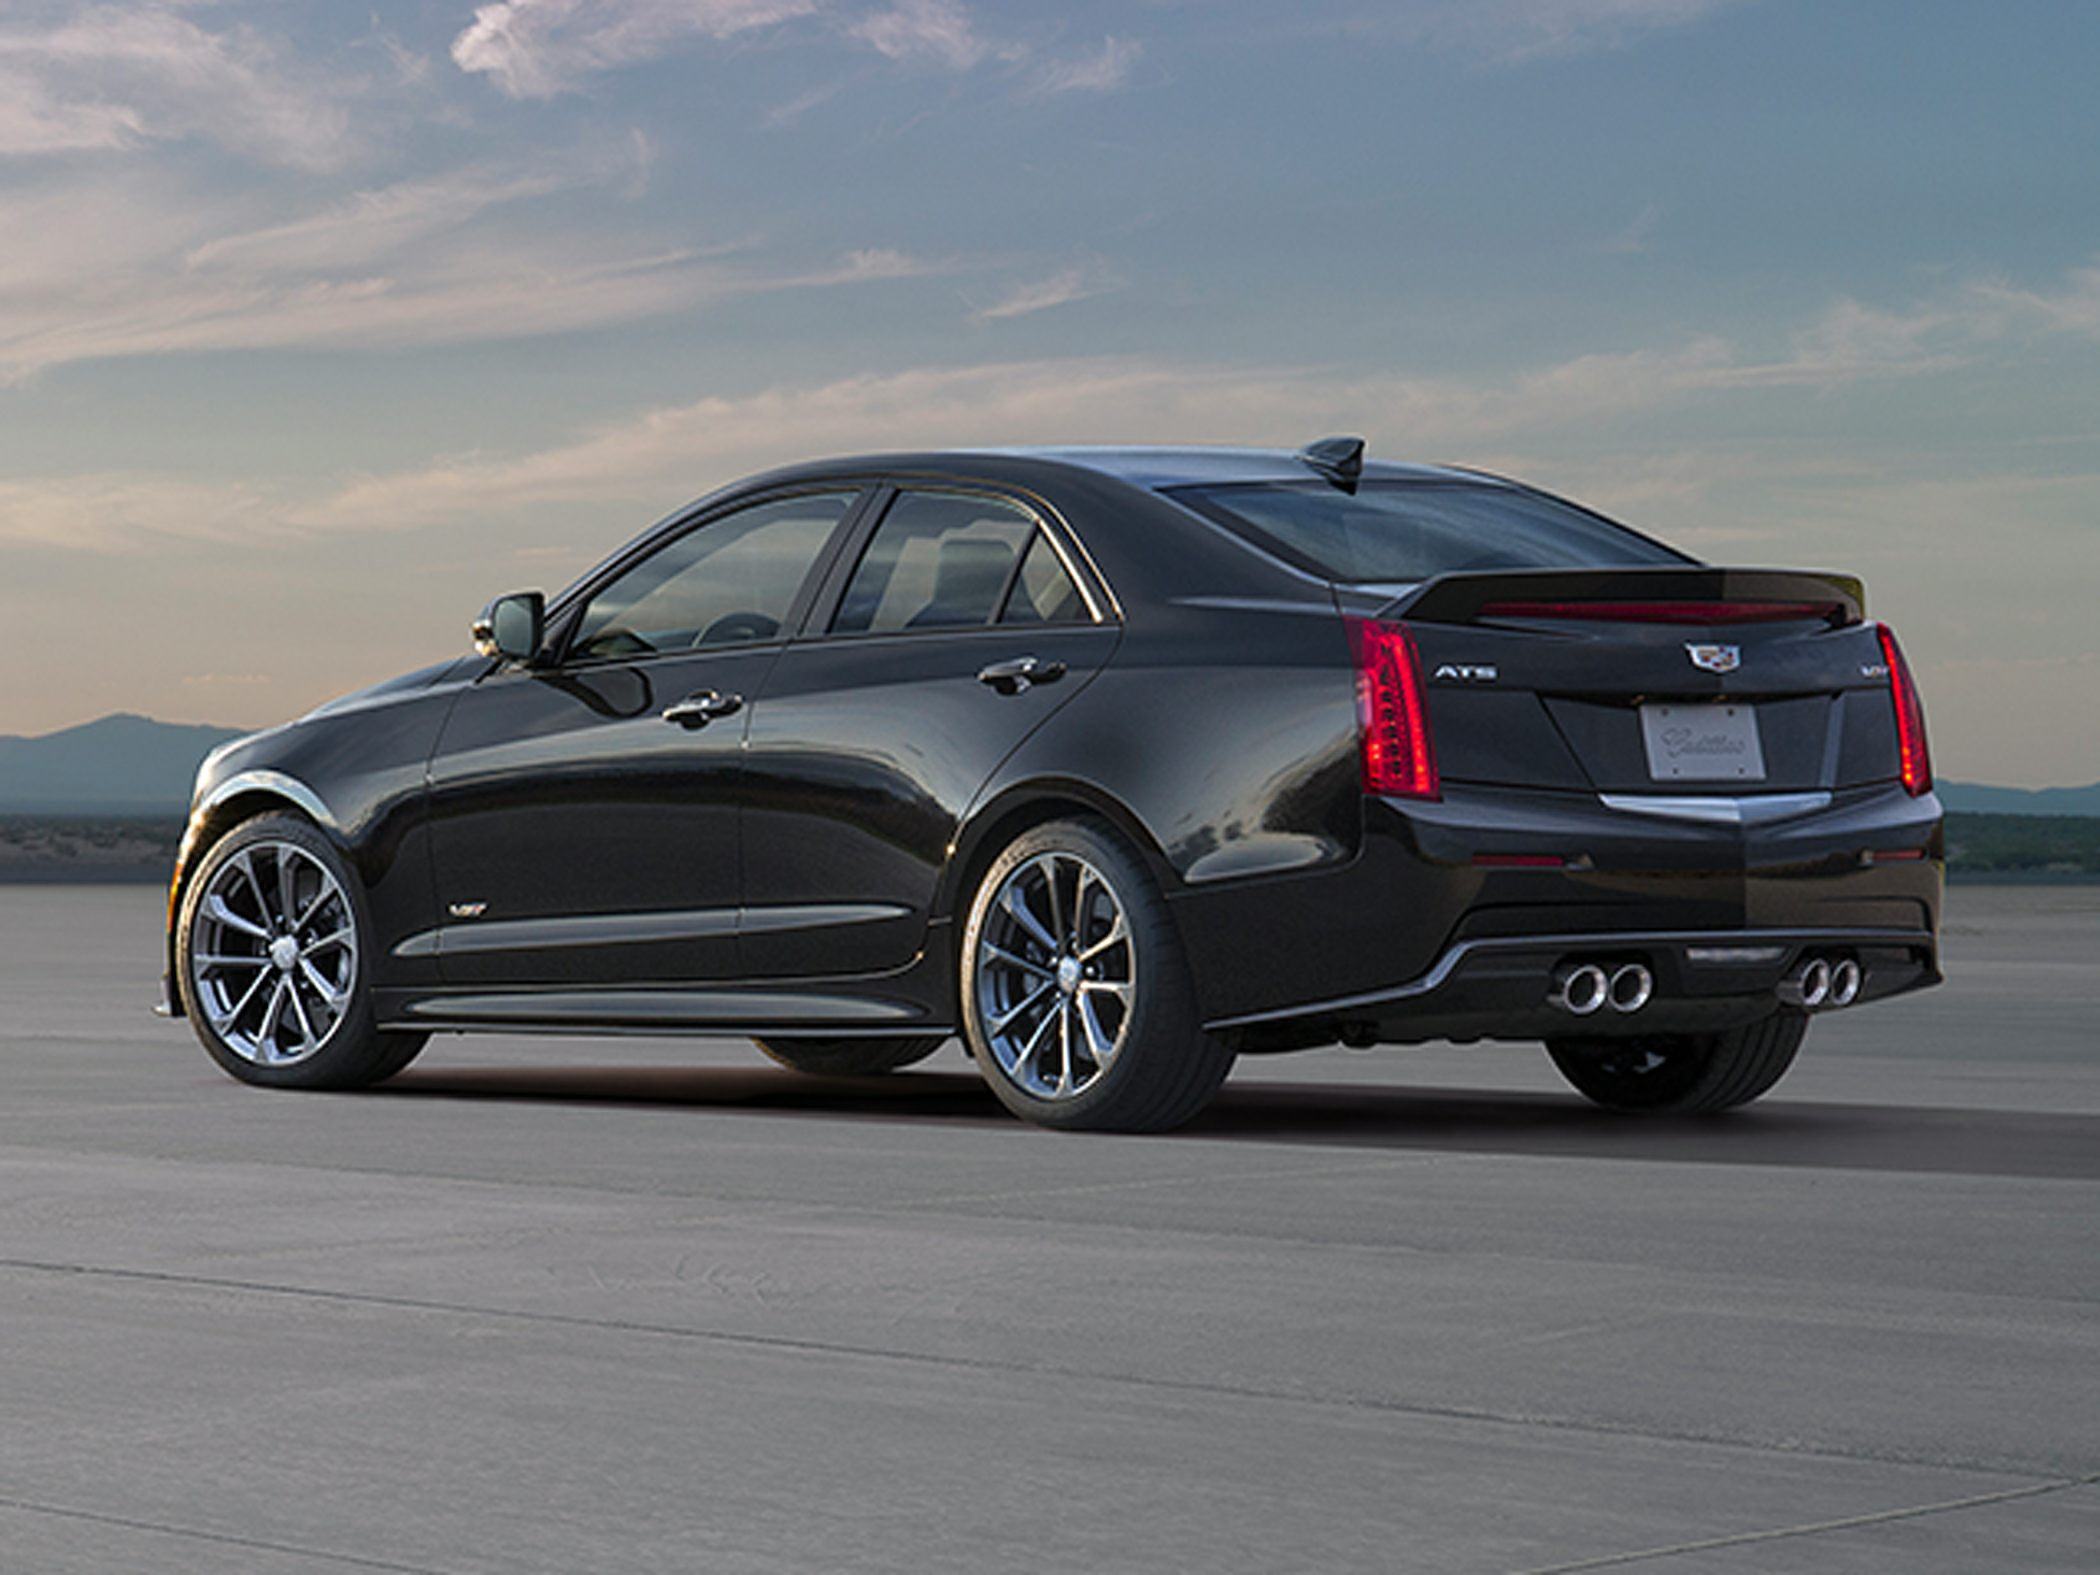 2018 Cadillac Ats V For Sale In Peterborough Jack Mcgee Chevrolet